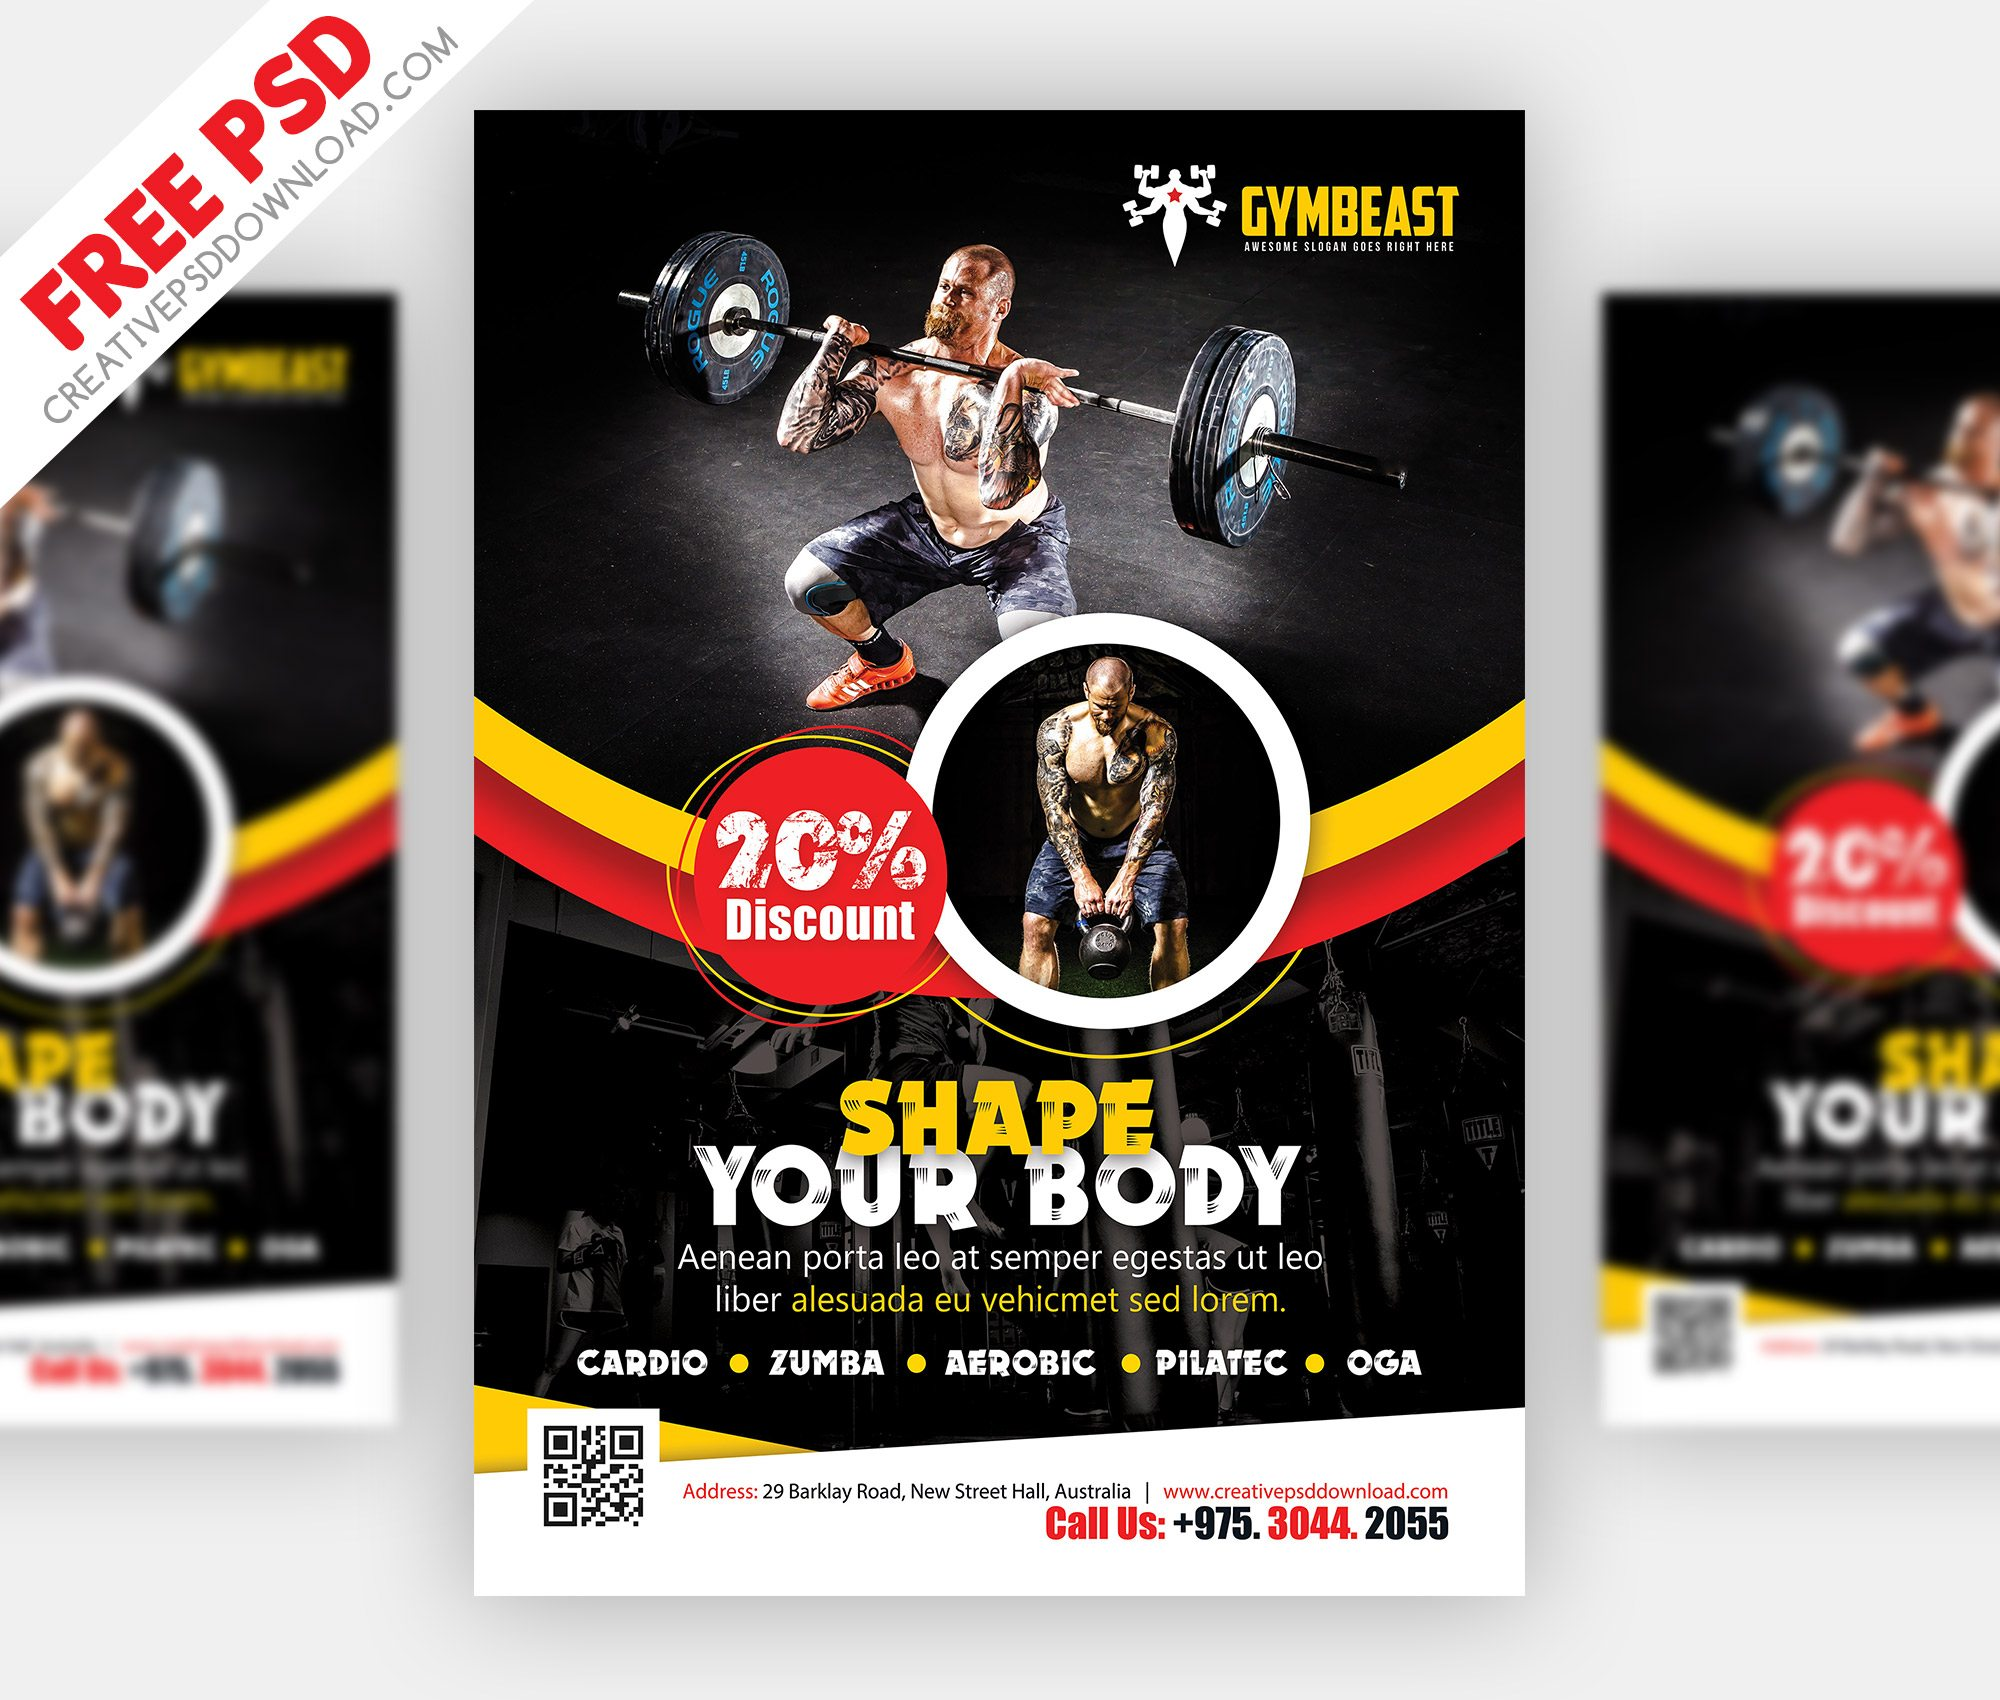 Fitness Flyer Free PSD,ad,advertisement,advertising,aerobic,best psdfreebies,boby shpe,body,body building,body builng,bodybuilding,clean flyer,club,colorful,creative,design templates,energy,fit,fitness,fitness center,fitness club,fitness flyer,fitness flyer template,fitness flyers,fitness leaflet,fitness pamphlet,flyer,flyer a4,flyer us letter,free psd,freebie,fresh,gym,gym flyer,health,healthcare,healthy,leaflet,magazine ad,man gym,man sport,modern,modern flyer,multipurpose,muscle,pamphlet,print,professional,promo,promotion,psd,psd freebies,psdfreebies.com,quality,services,spa,spa flyer,sport,sport club,sport flyer,sports,sports flyer,step,template,training,training flyer,woman gym,woman sport,workout,yoga,flyers